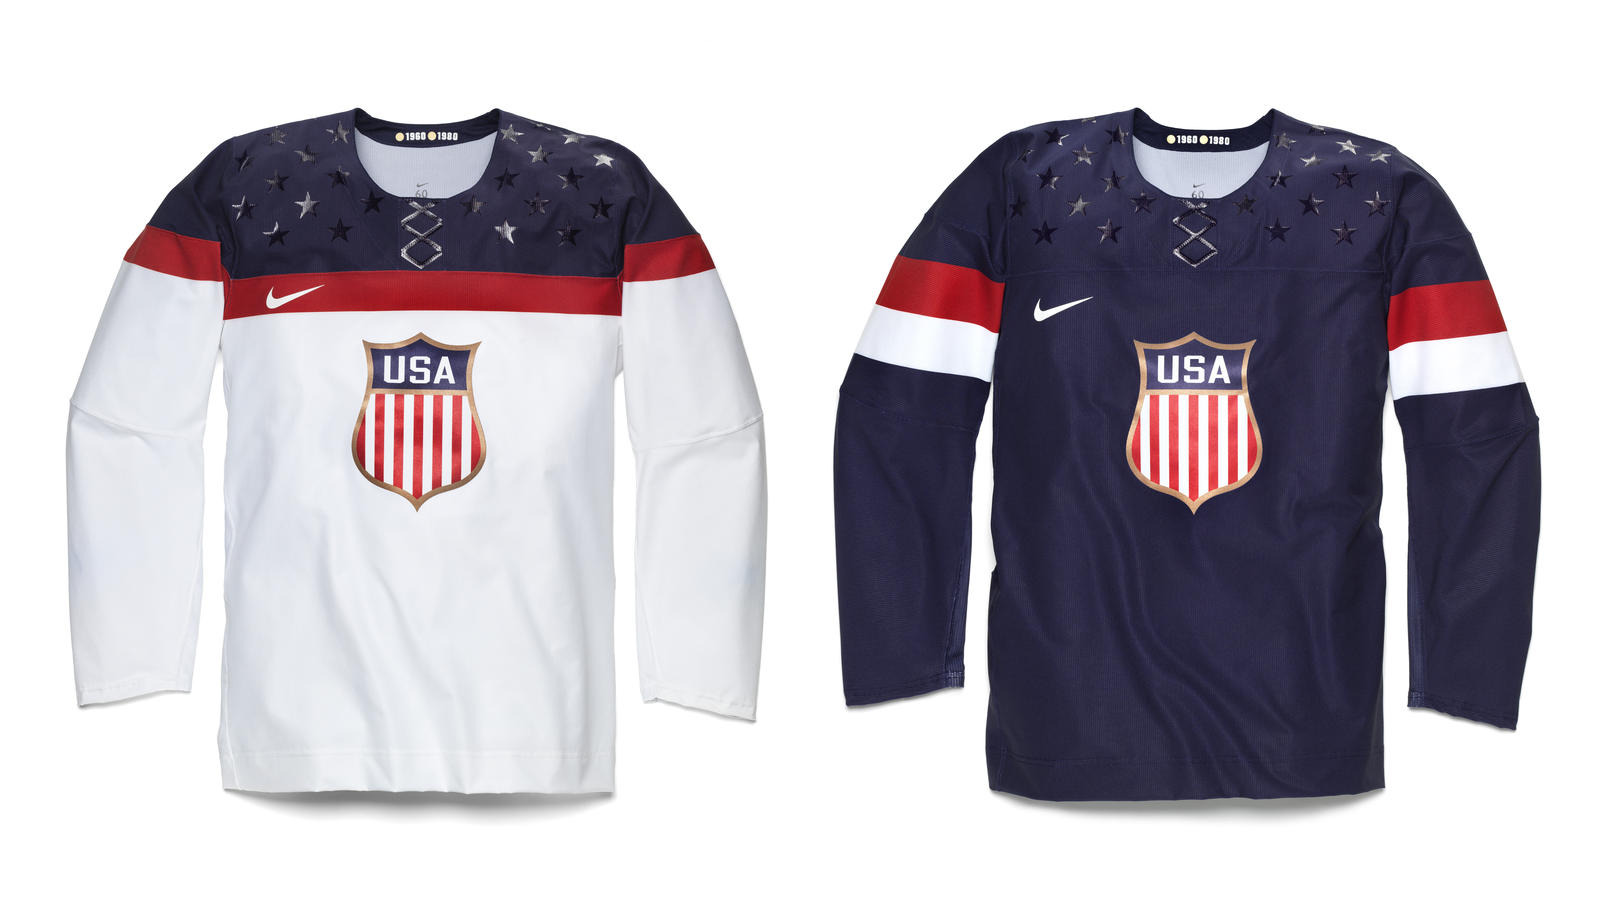 separation shoes 9c7b6 f2542 Nike Unveils 2014 USA Olympic Hockey Jersey - Nike News